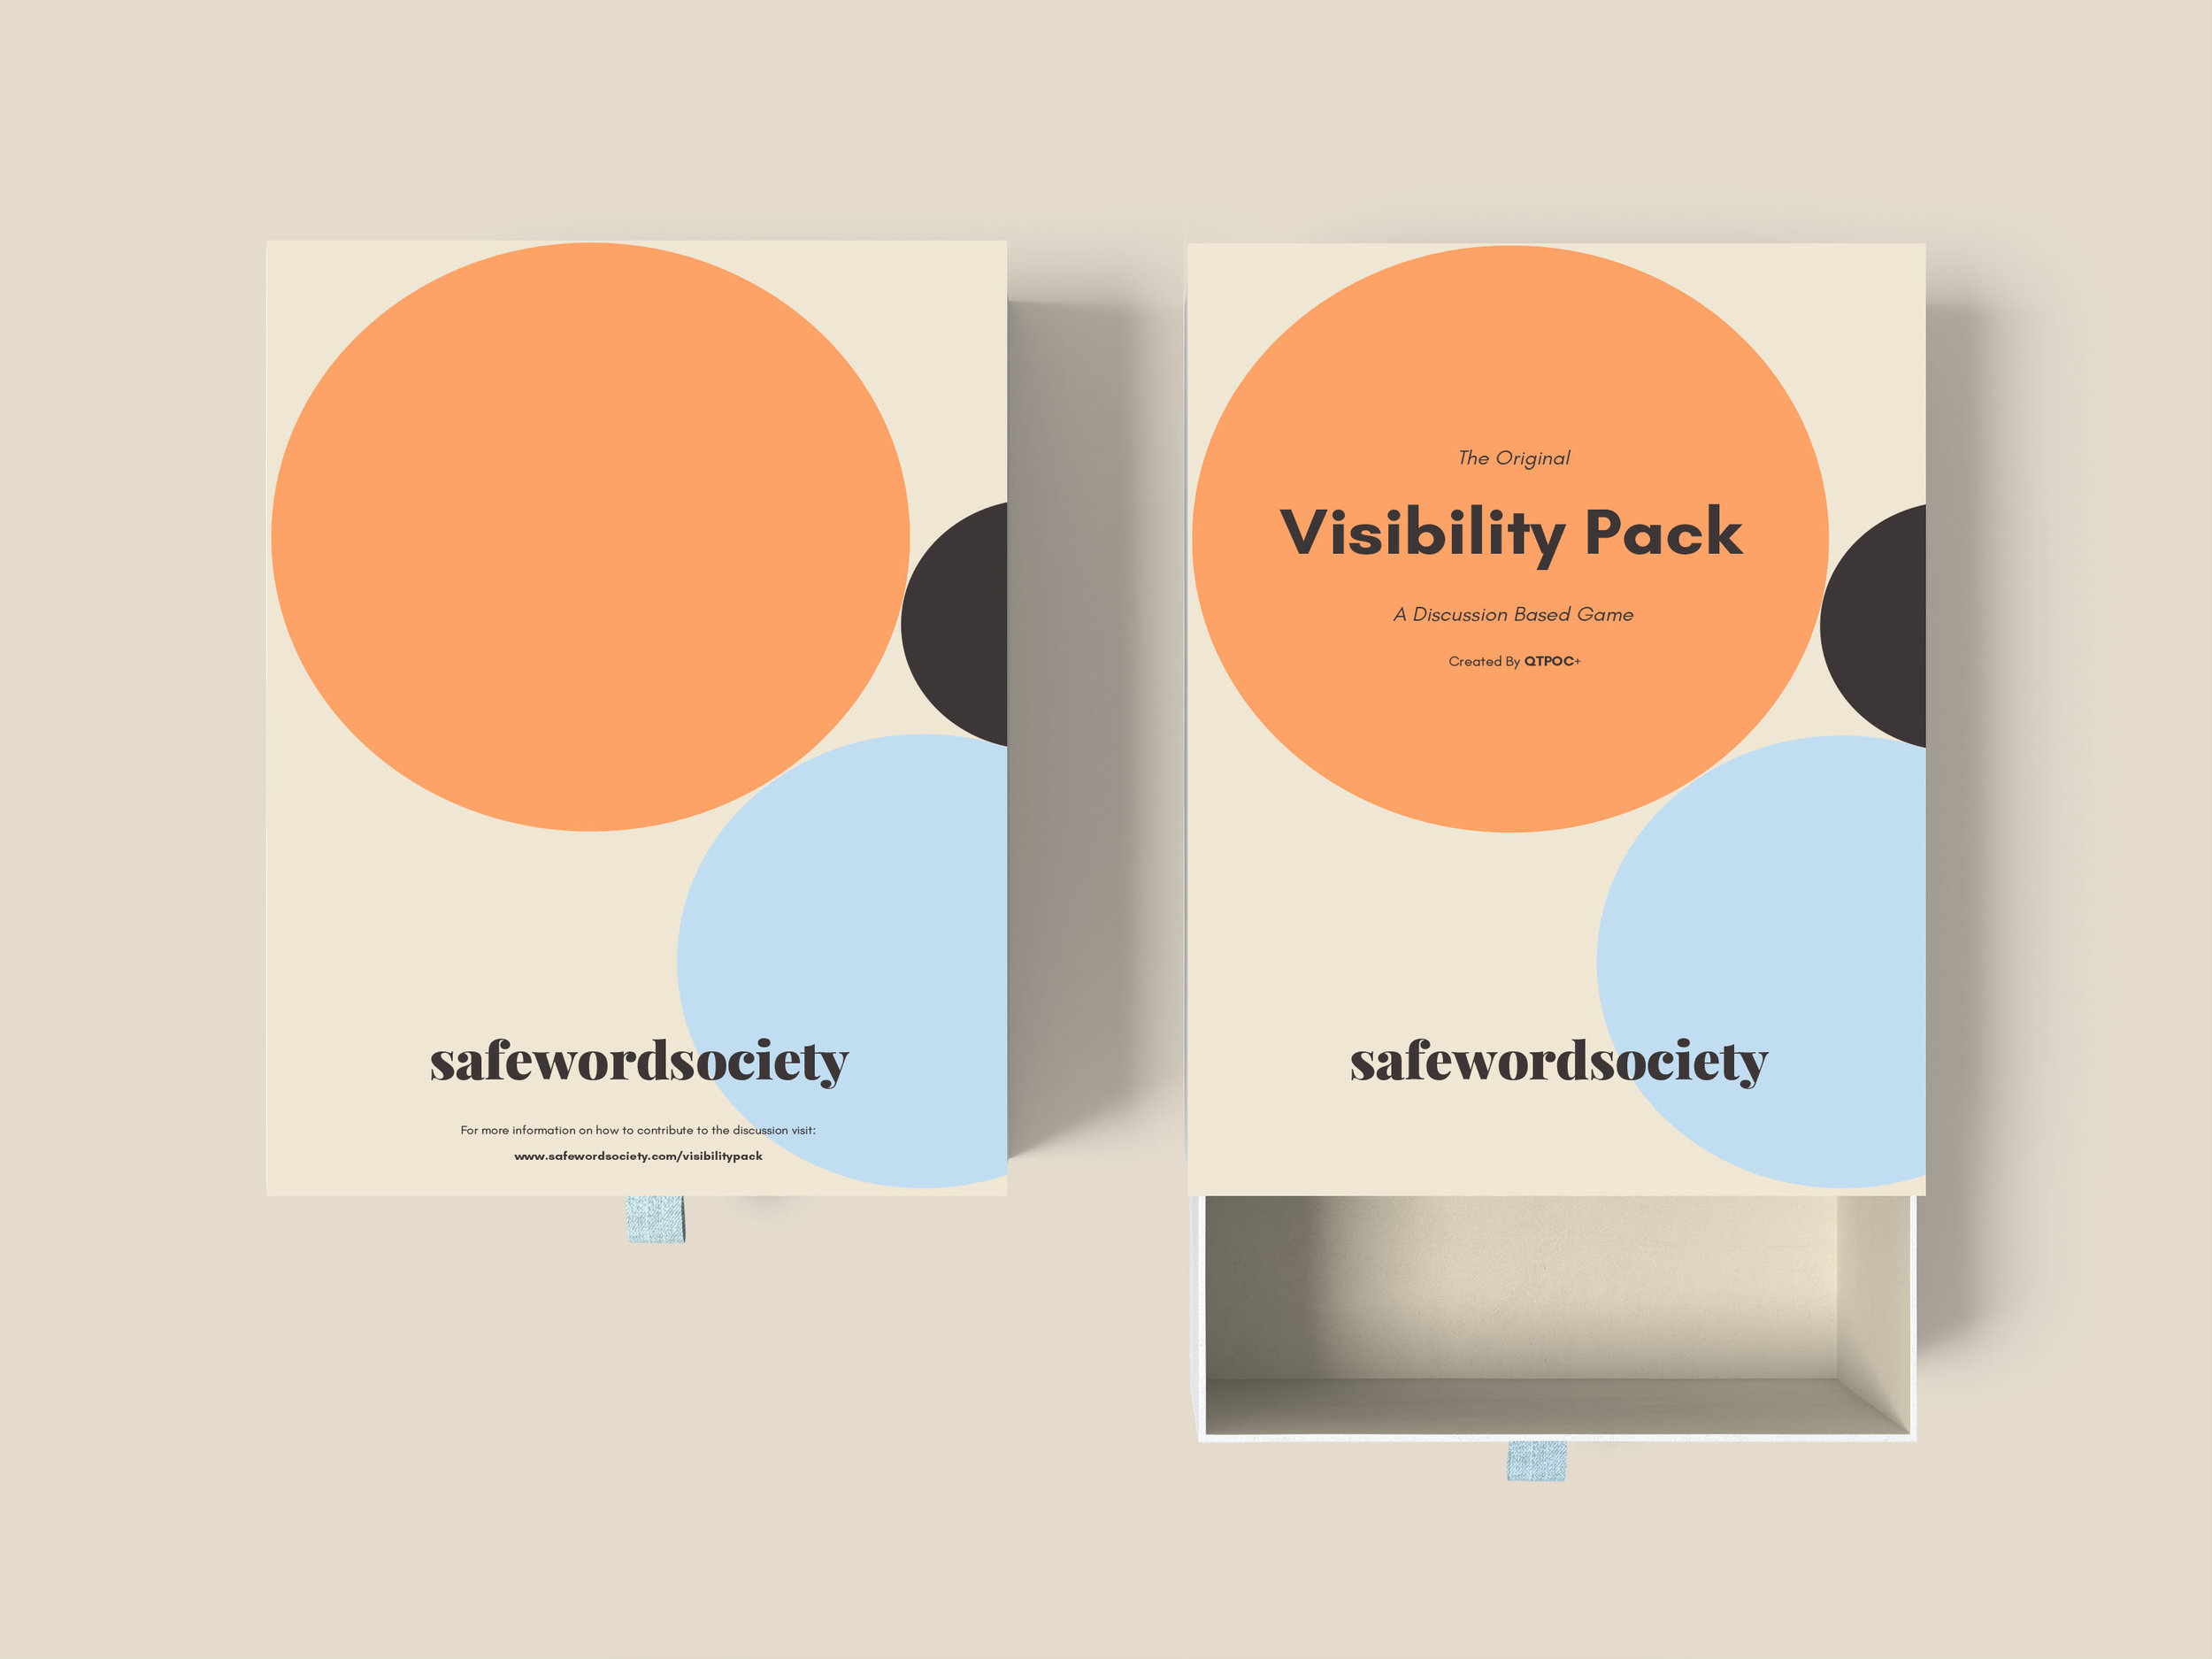 Packaging and Product Design   Safewordsociety